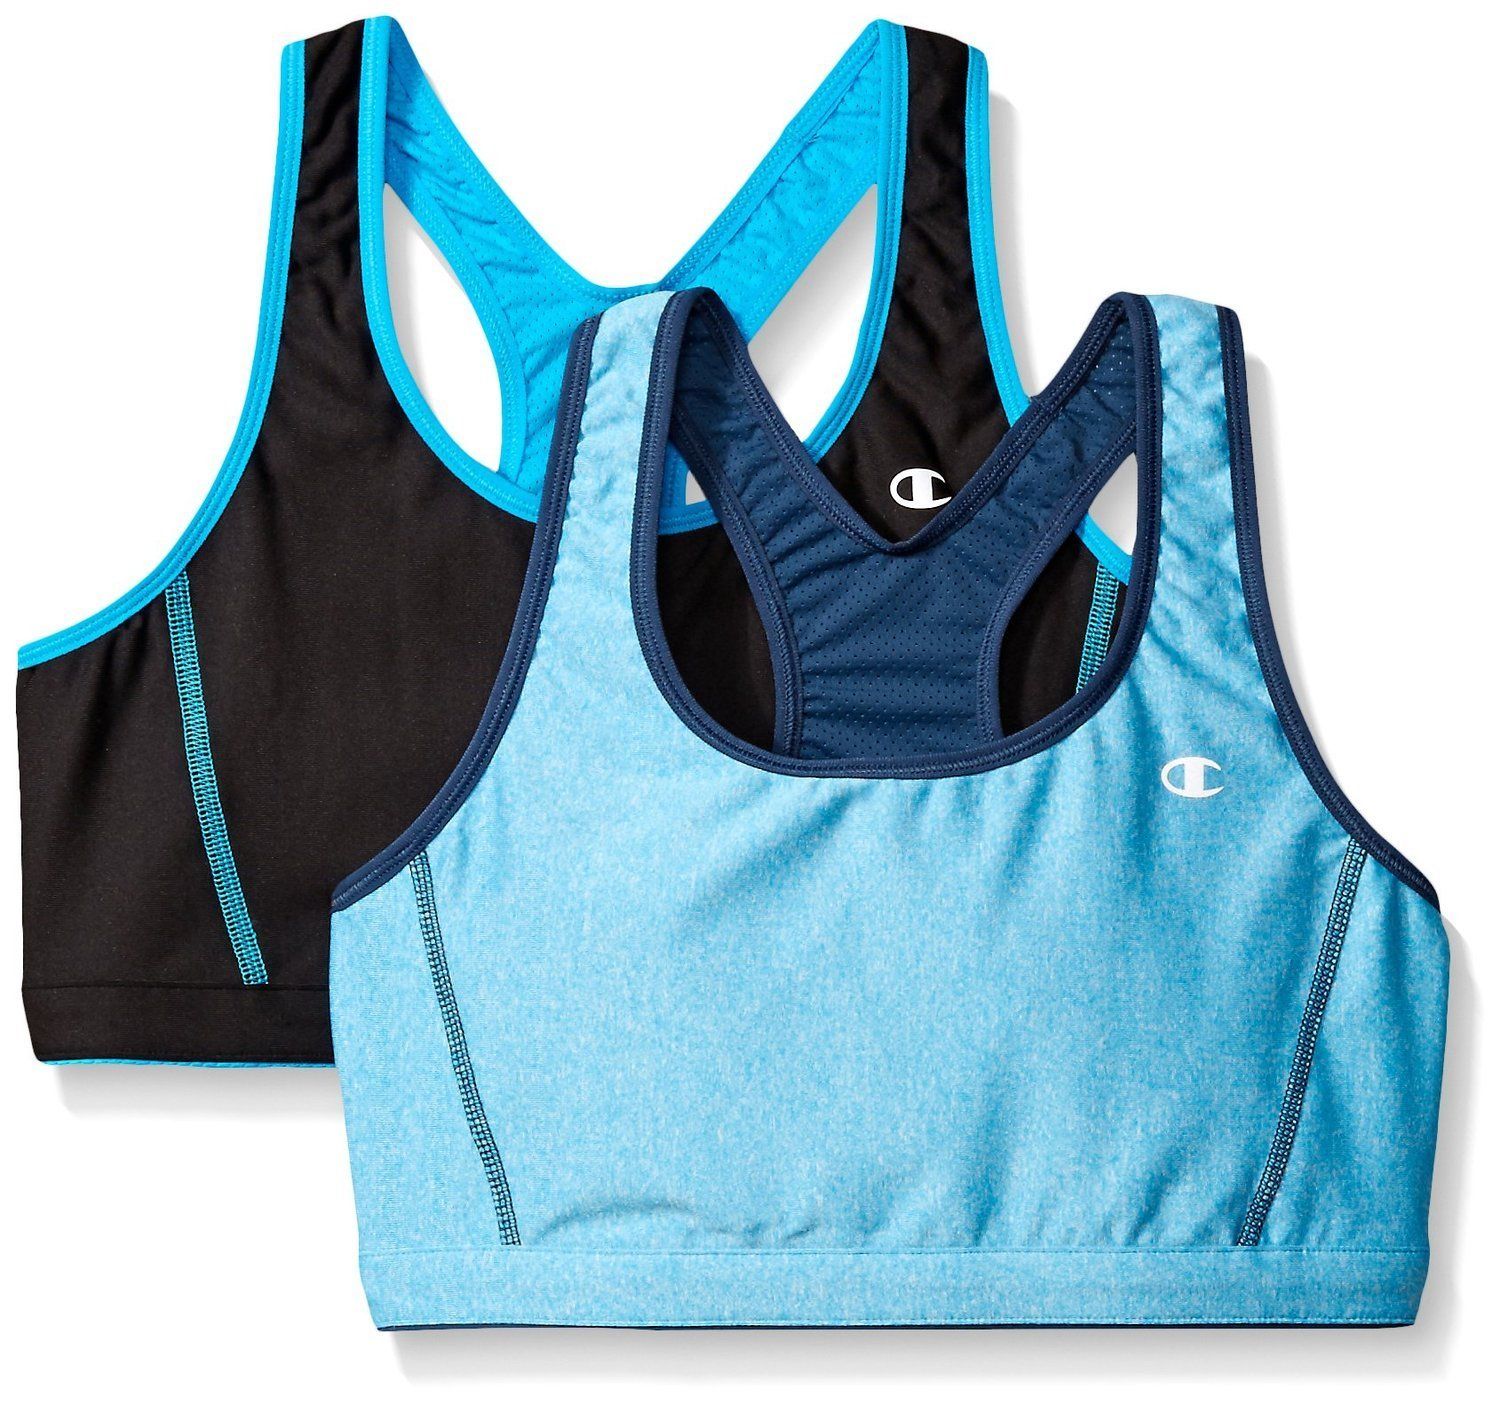 f4c17ca6a6aad Get Quotations · Champion Womens 2-Pack Reversible Double Dry Sports Bras